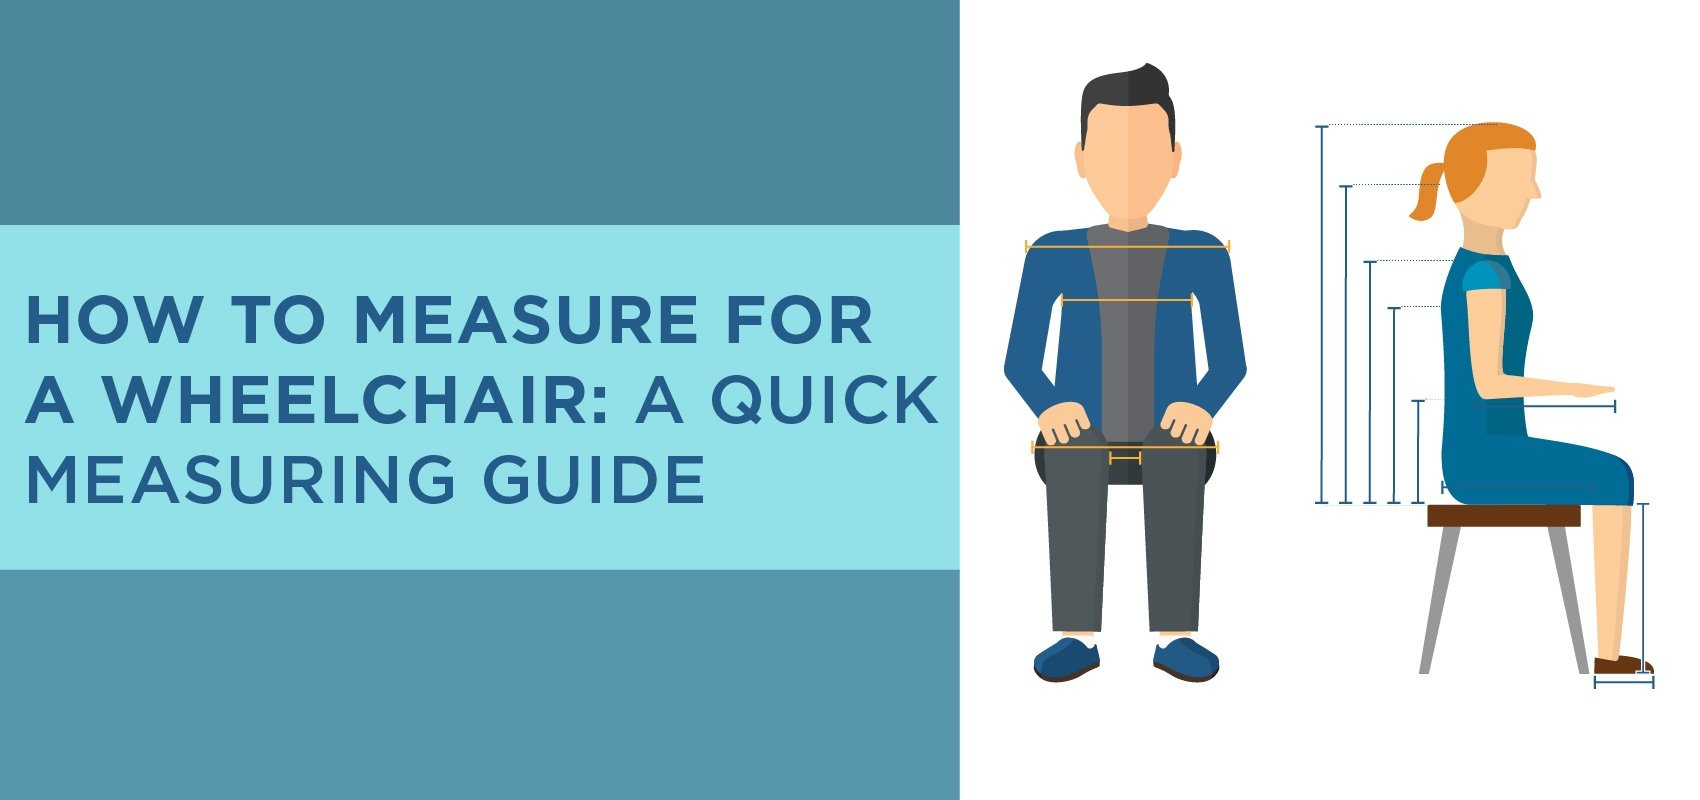 c858c3a9dc7 How to Measure for a Wheelchair  A Quick Measuring Guide